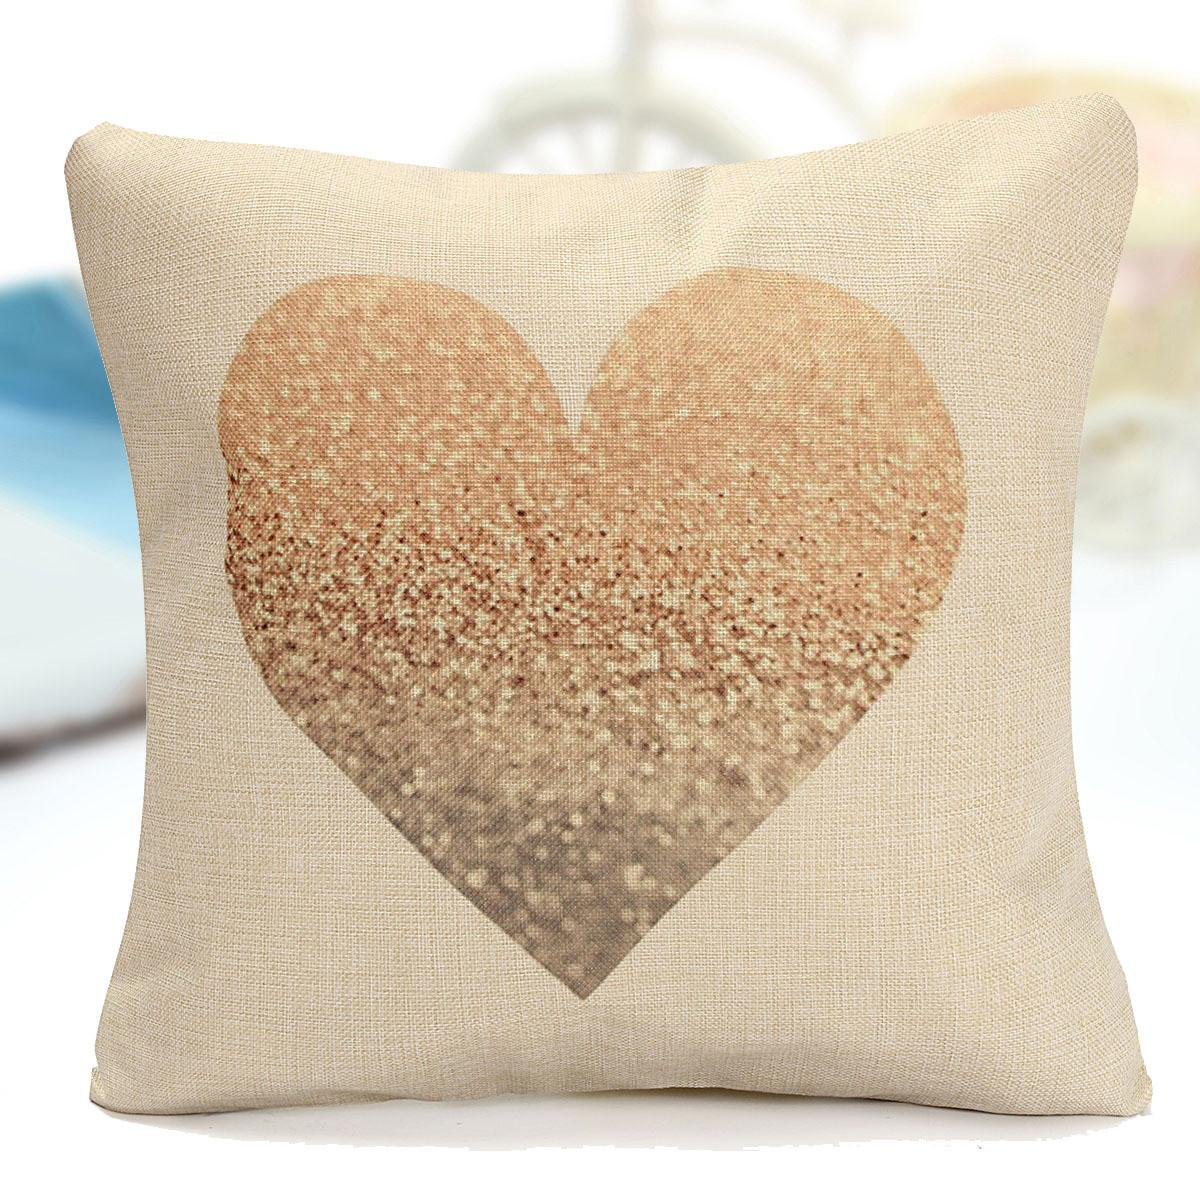 Vintage Love Heart Cotton Linen Cushion Cover Throw Pillow